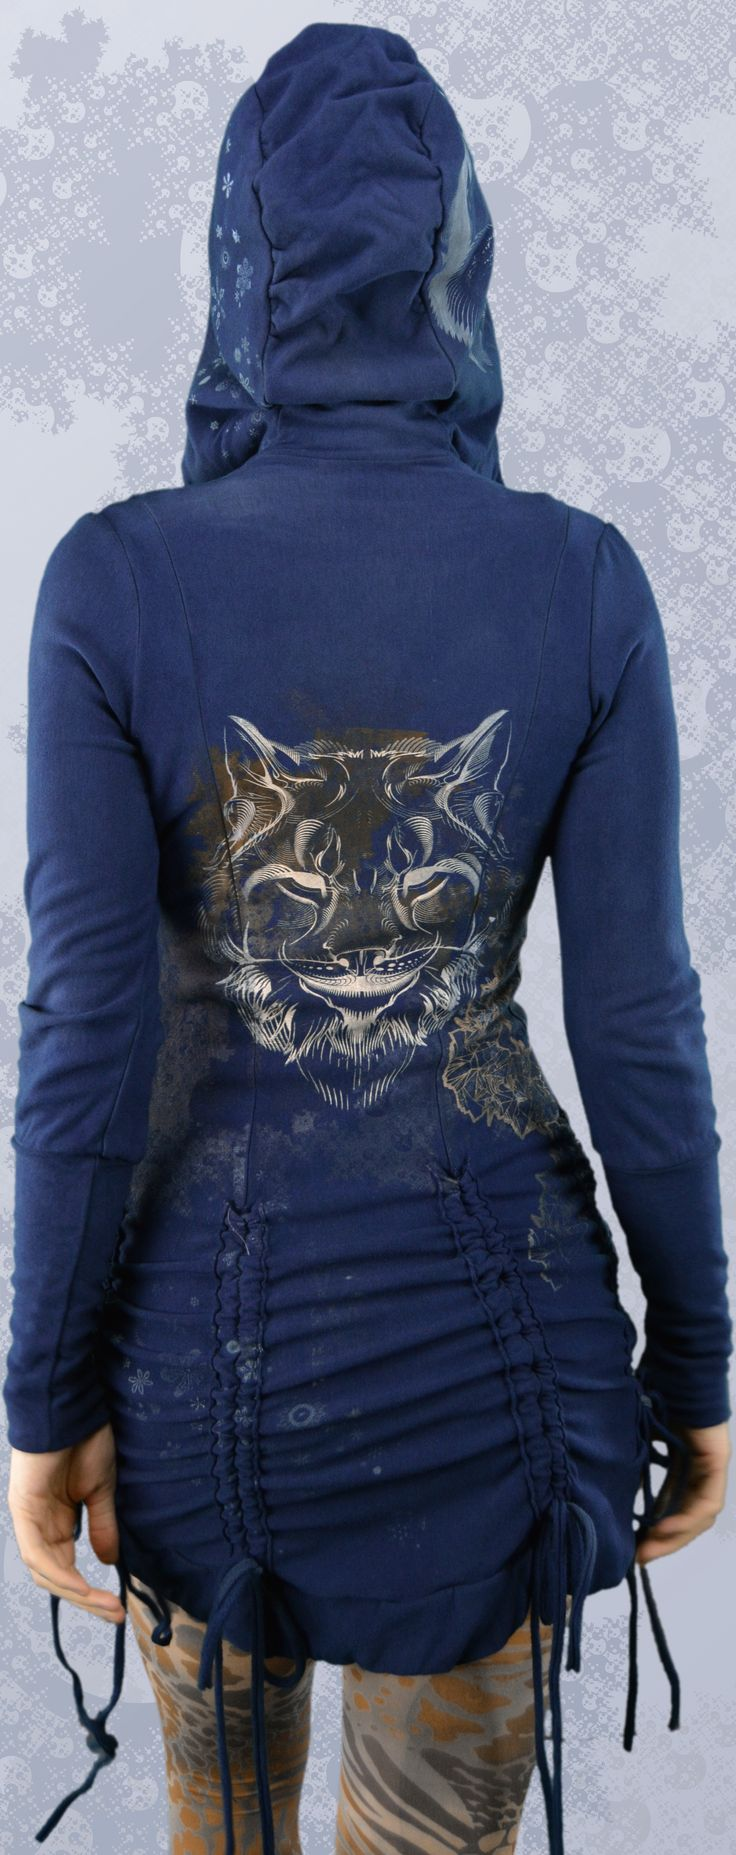 Bamboo Bustle Jacket made in Canada from organic fabric. Printed with totem animal visionary art, the lynx, mountain lion, snow flakes, crystal winter land scape, sacred geometry art.